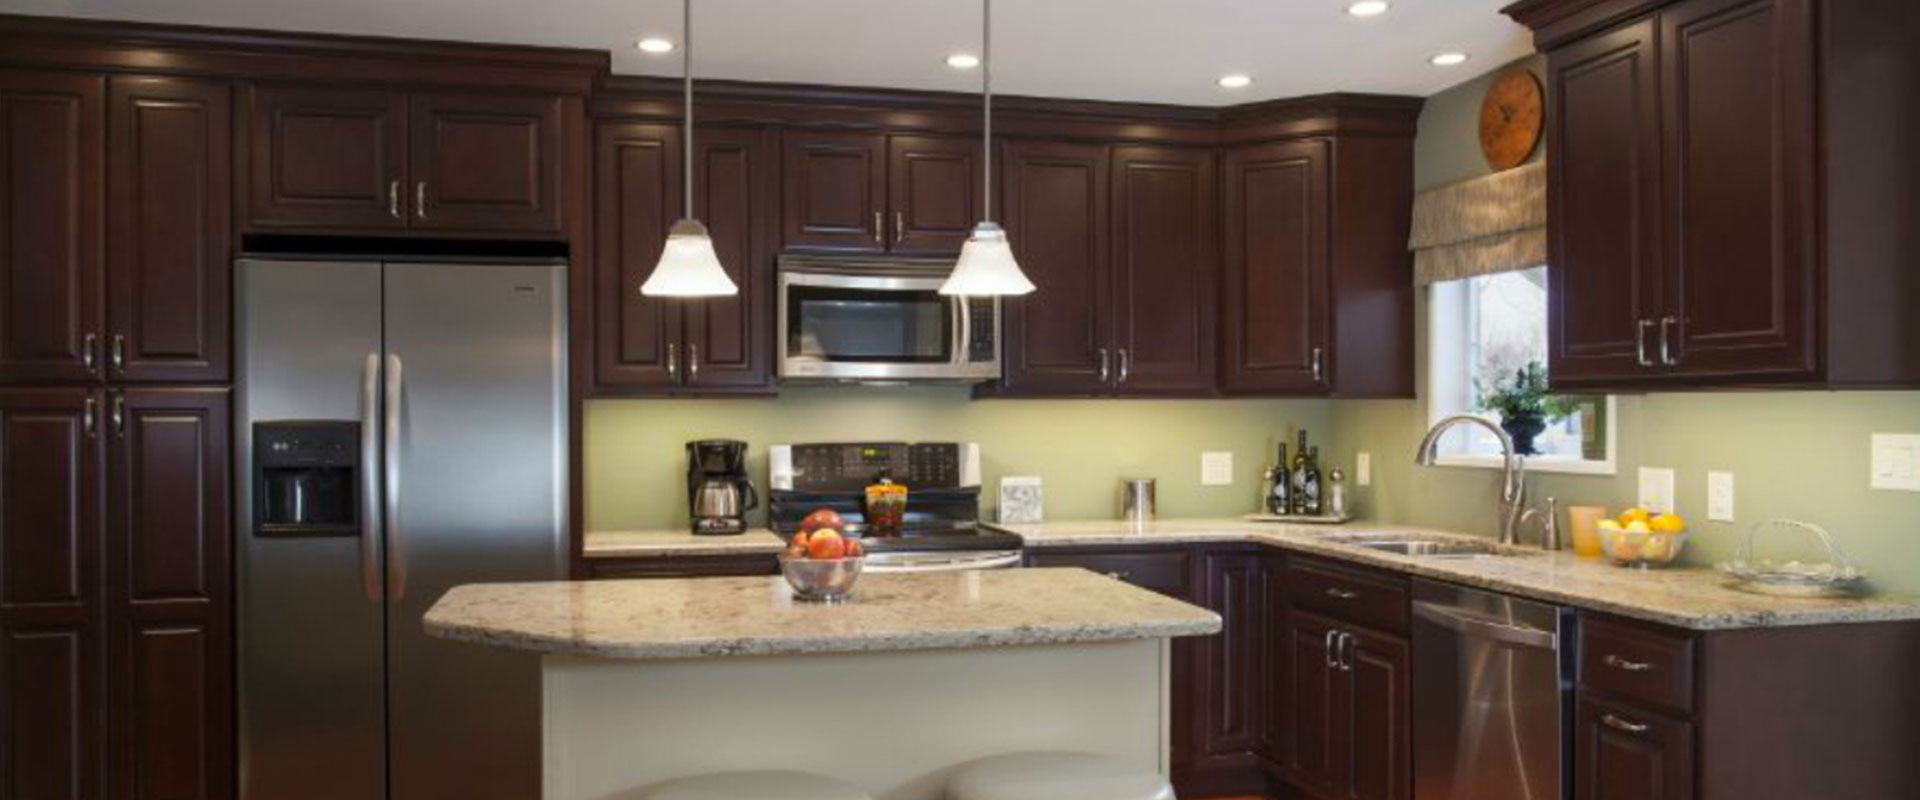 Marc Cantin Cabinetry Manchester Nh Kitchen Remodeling Countertops